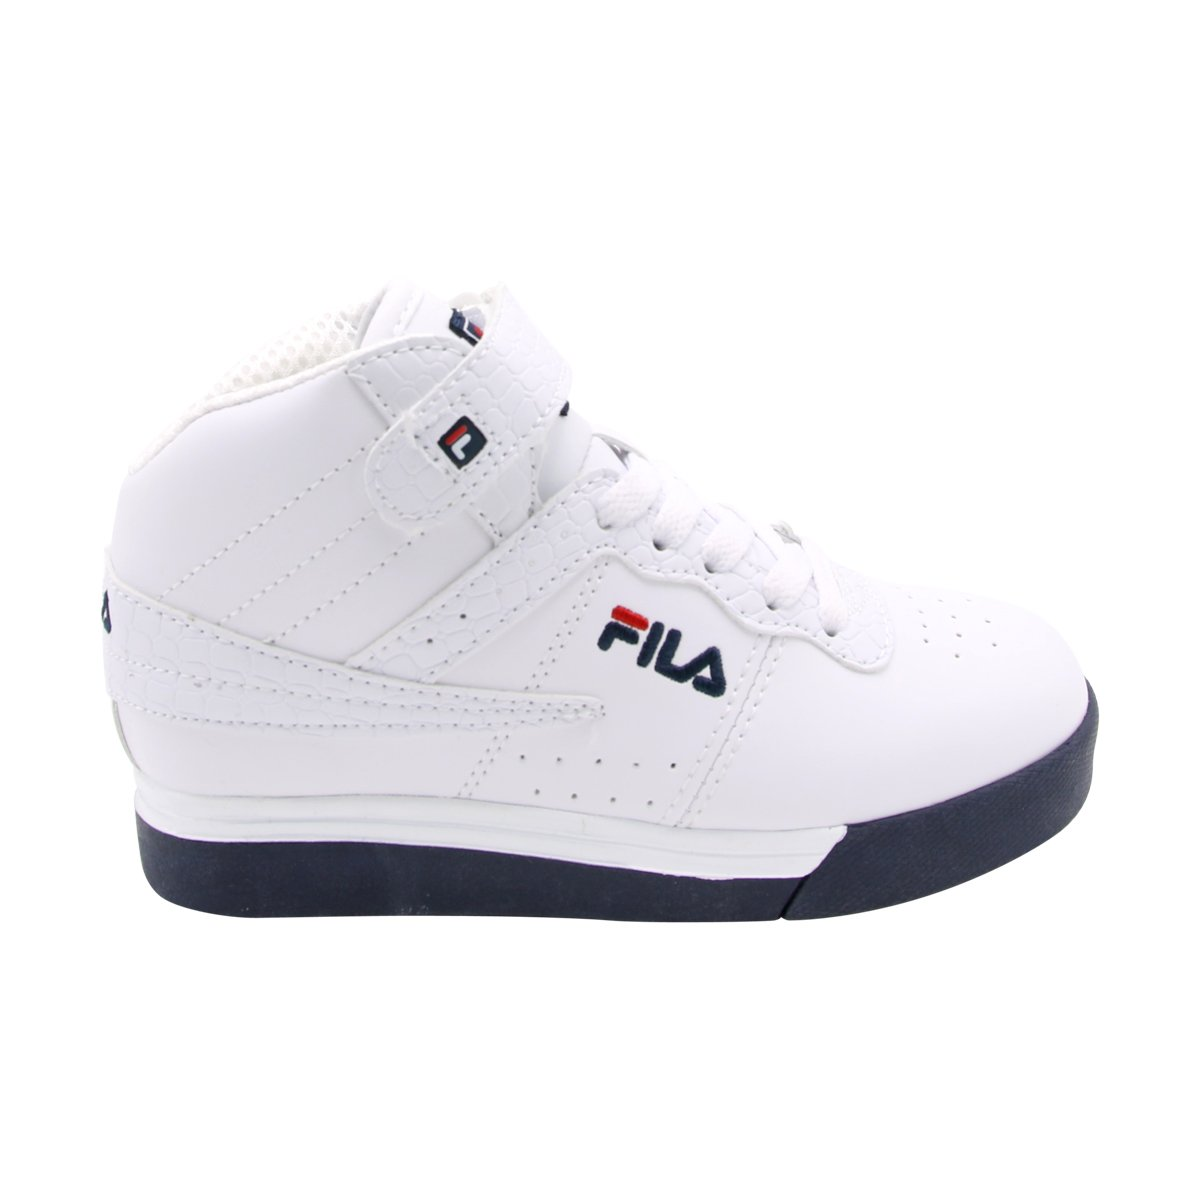 8428bede15ac Amazon.com: Fila - Boy's Vulc 13 Mid Sneakers (Little Kid/Big Kid) - White/Navy/Red:  Shoes